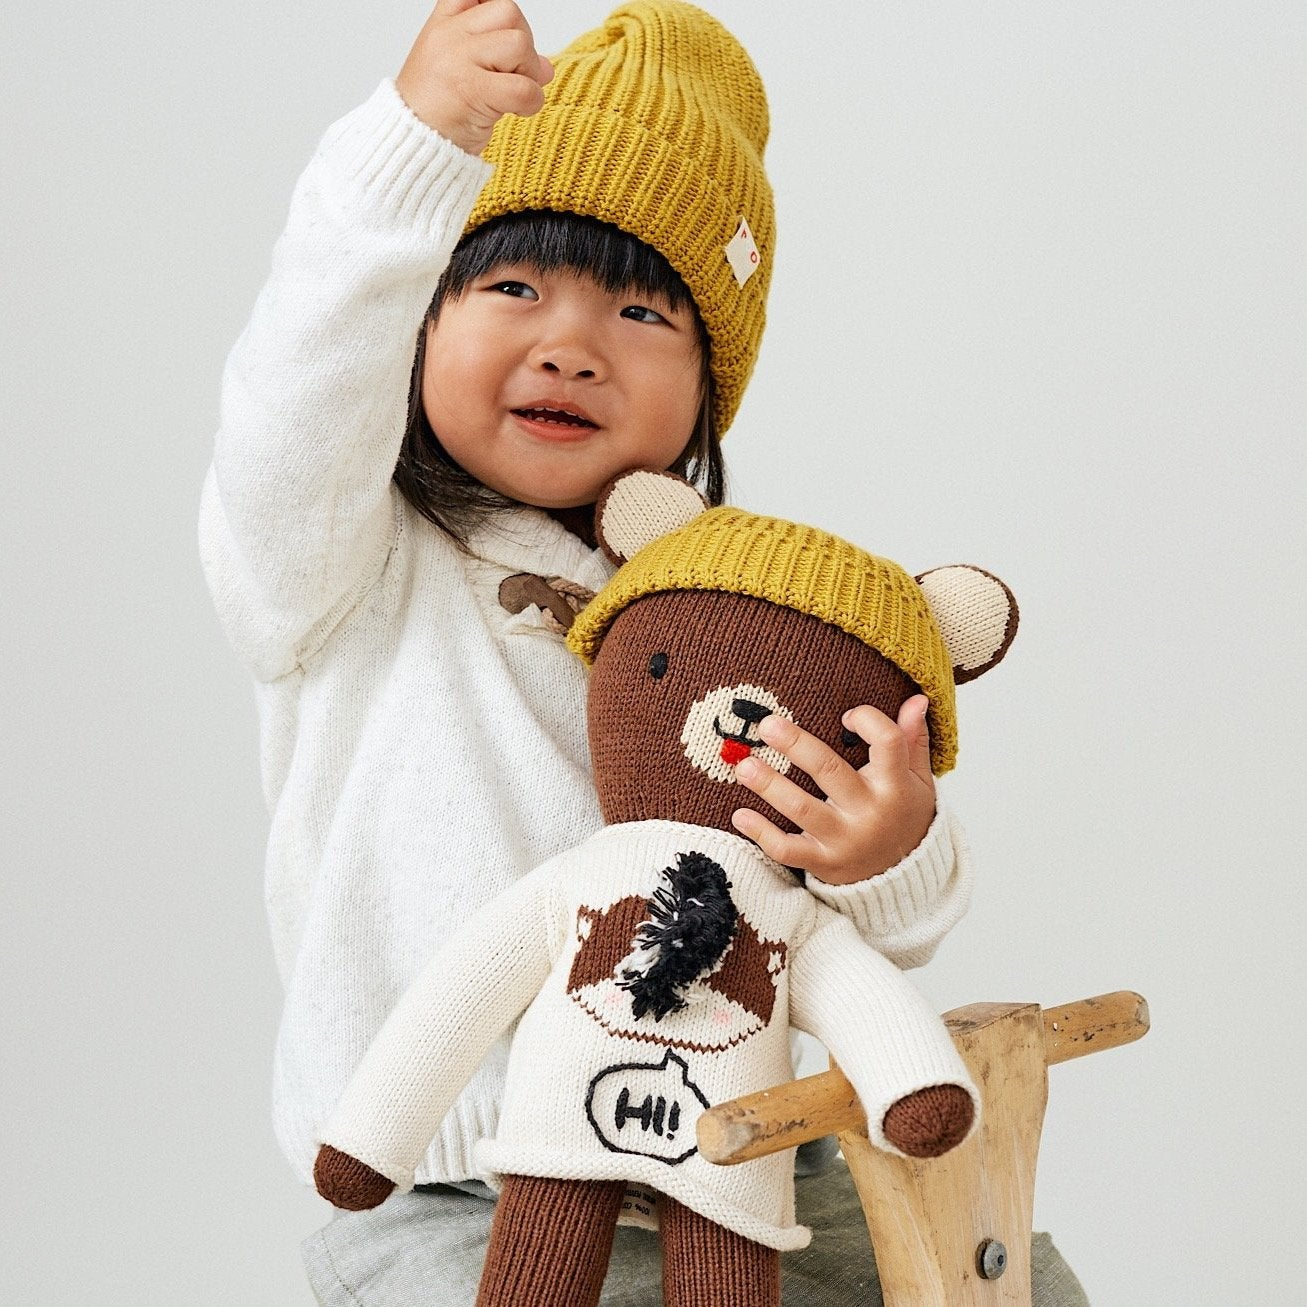 Child model with stuffed brown bear wearing yellow beanie